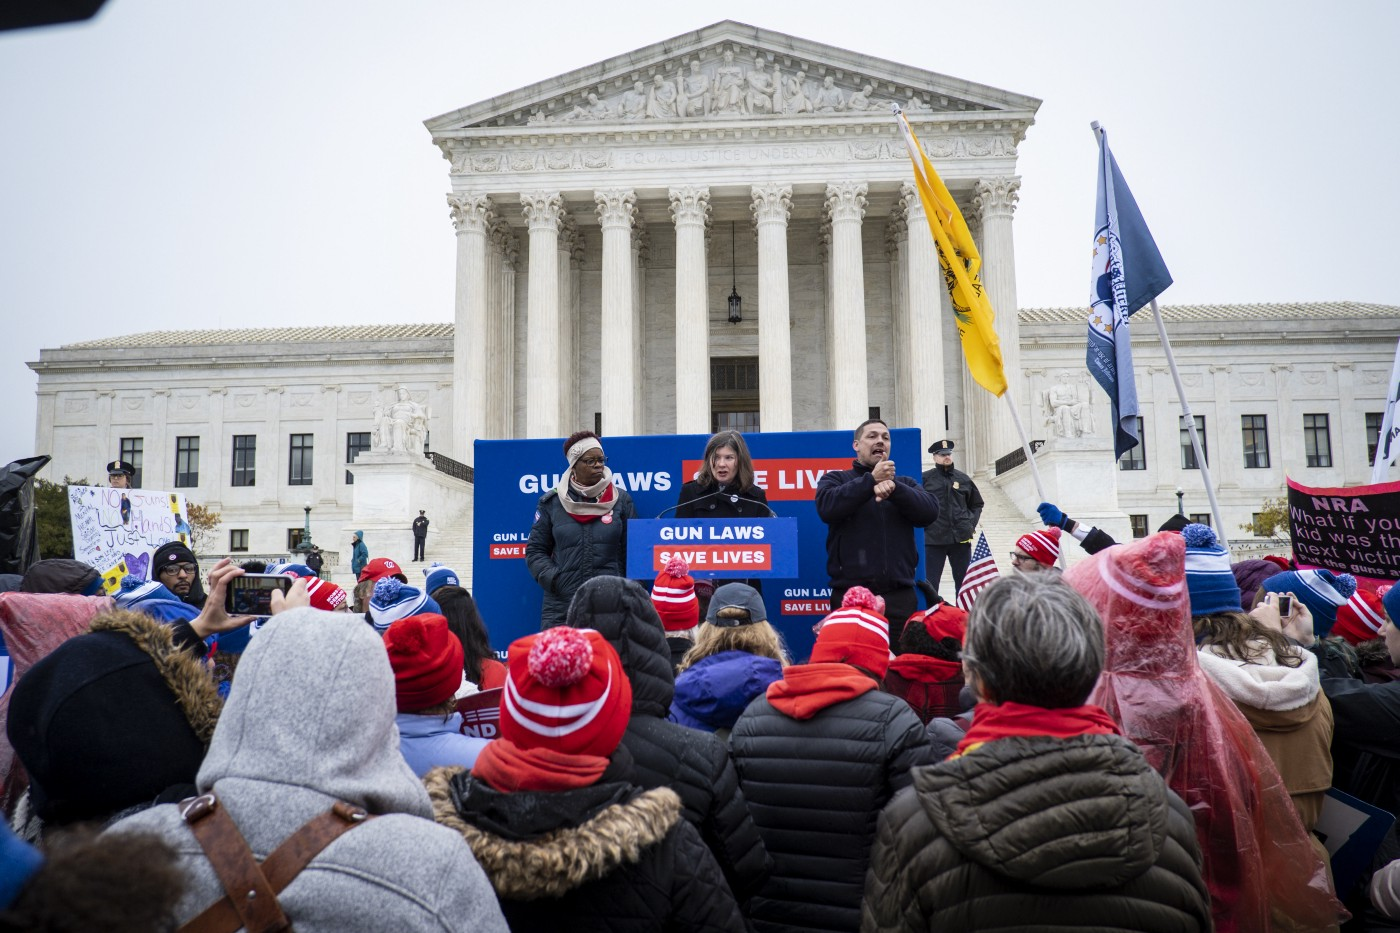 """A crowd gathers in front of the Supreme Court for a rally. Signs and banners say, """"gun laws save lives"""""""